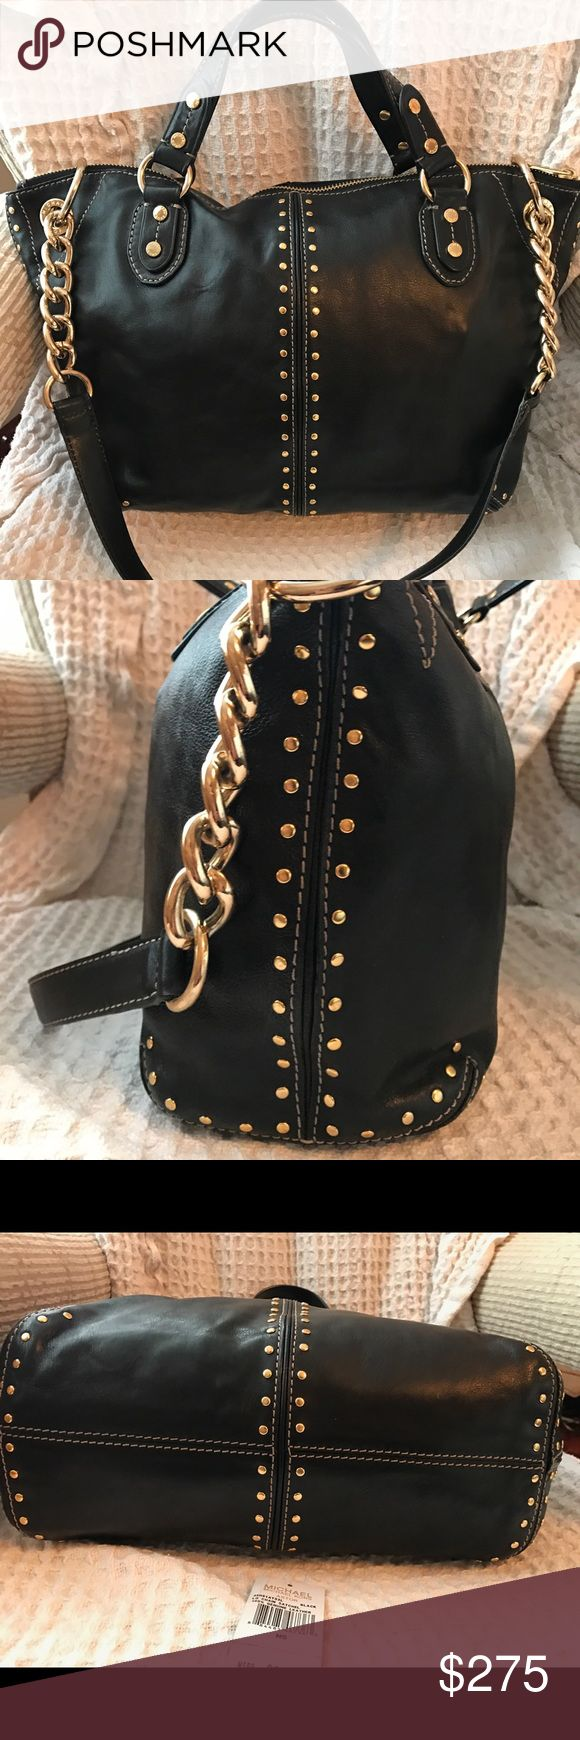 Michael Kors Purse Michael kors black bag 13 inches on bottom 18 inches across bag 10 inches from middle of bag to bottom. Like new inside Michael Kors Bags